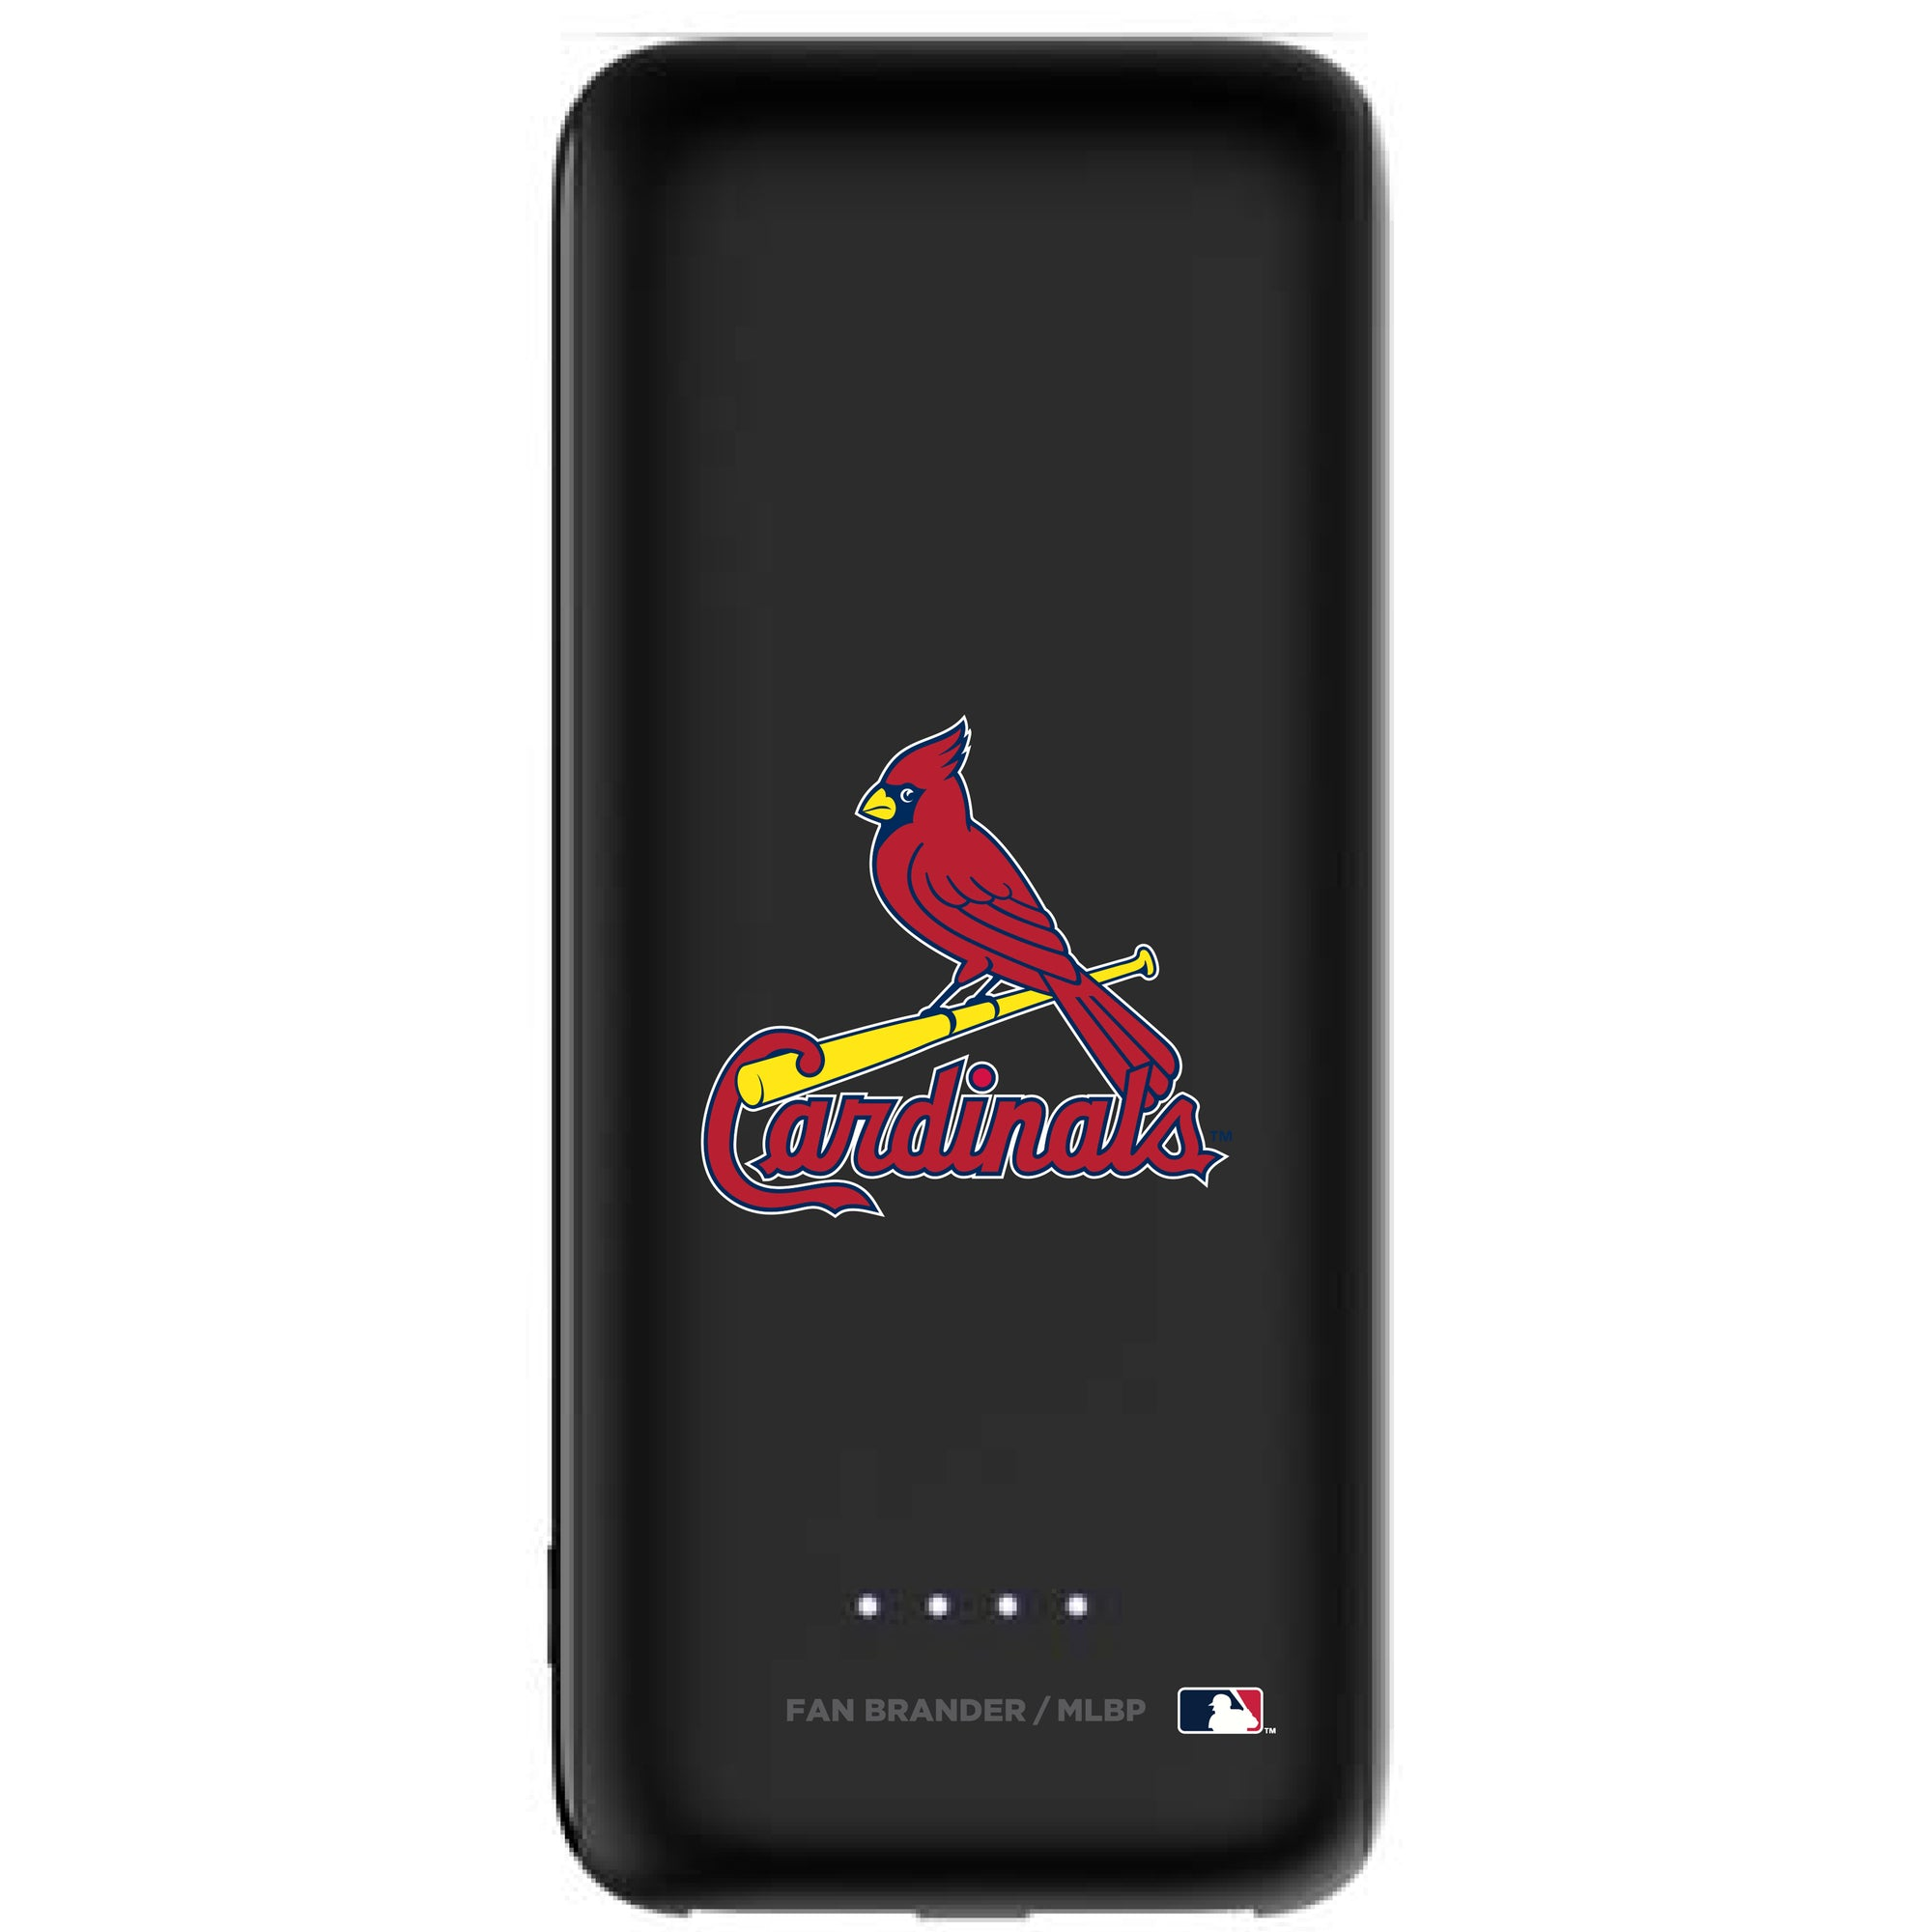 St. Louis Cardinals Power Boost Mini 5,200 mAH